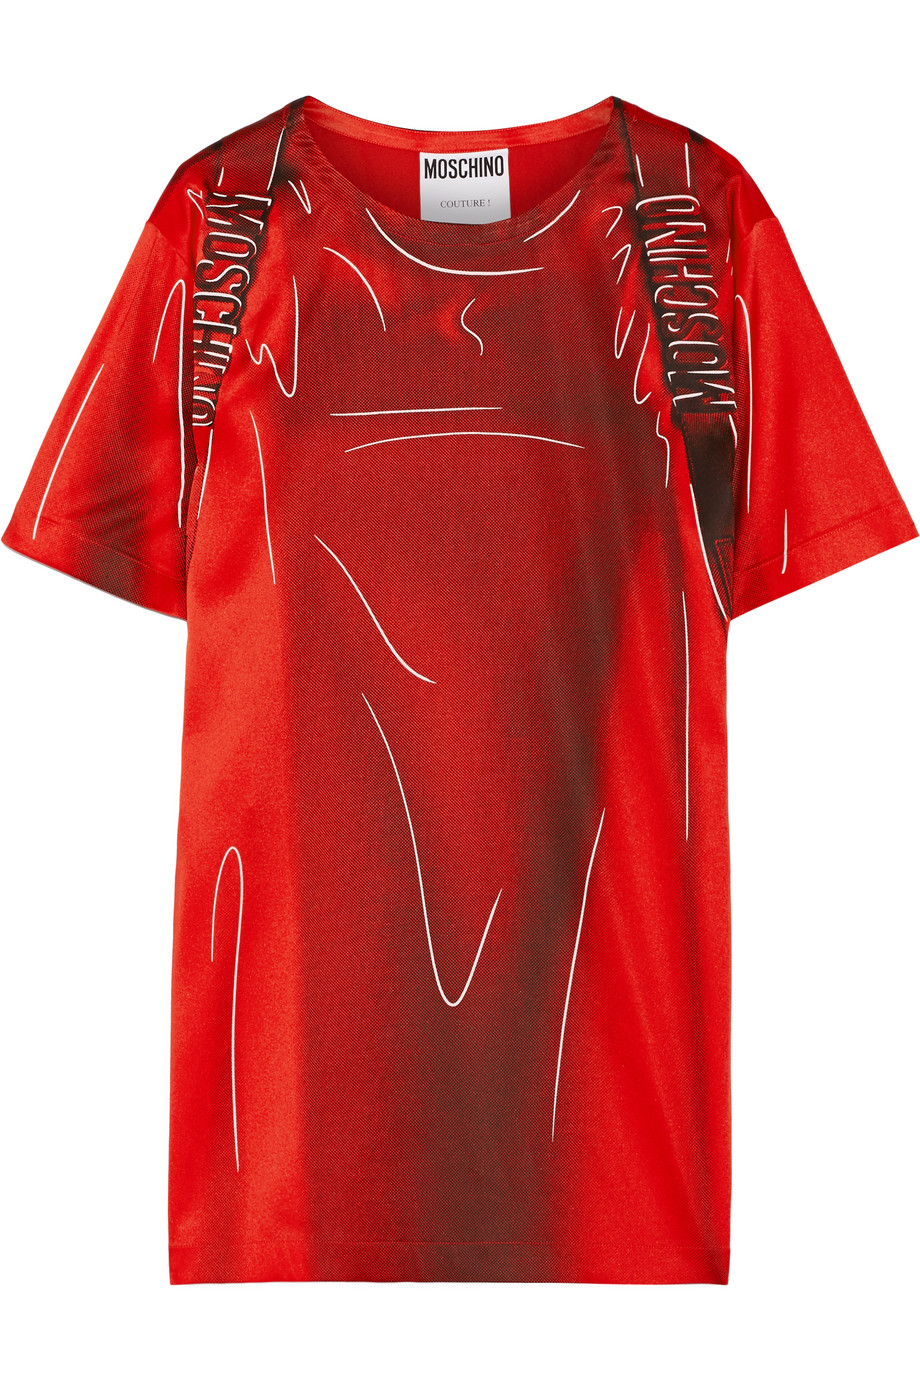 Moschino Printed Stretch-Satin T-Shirt Dress, Red, Women's - Printed, Size: 46